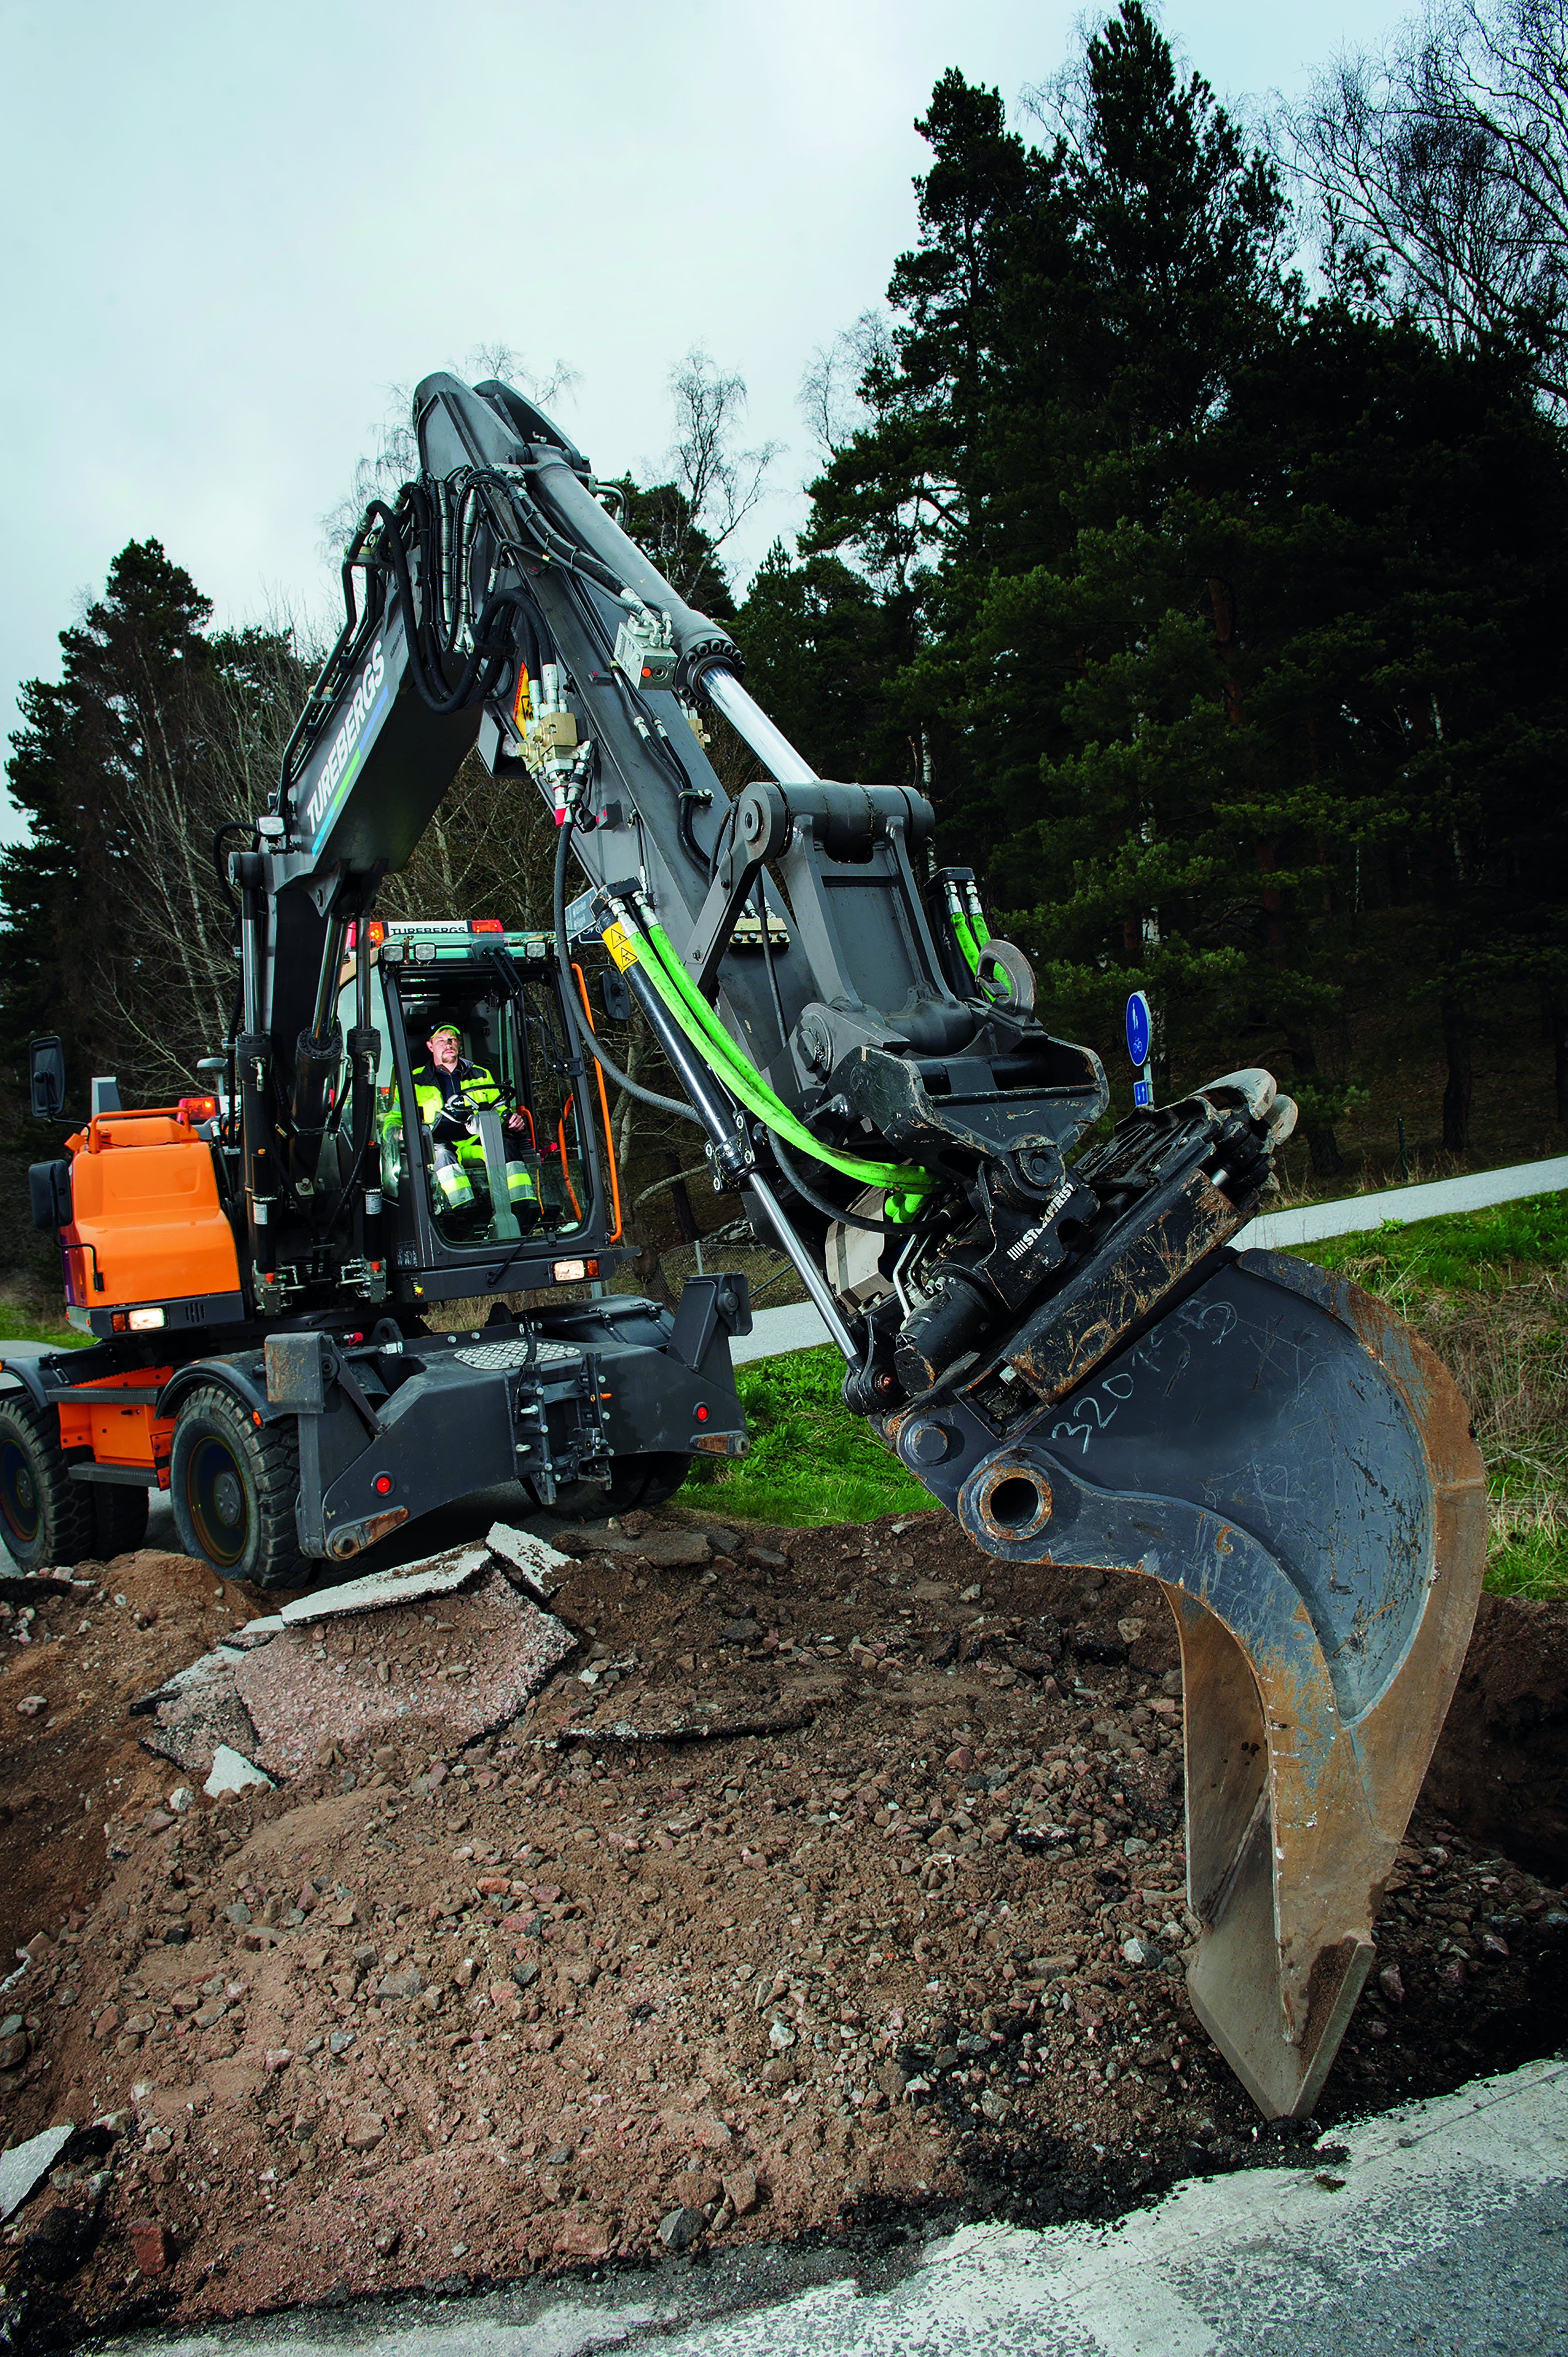 Tiltrotator demand on the rise in North America